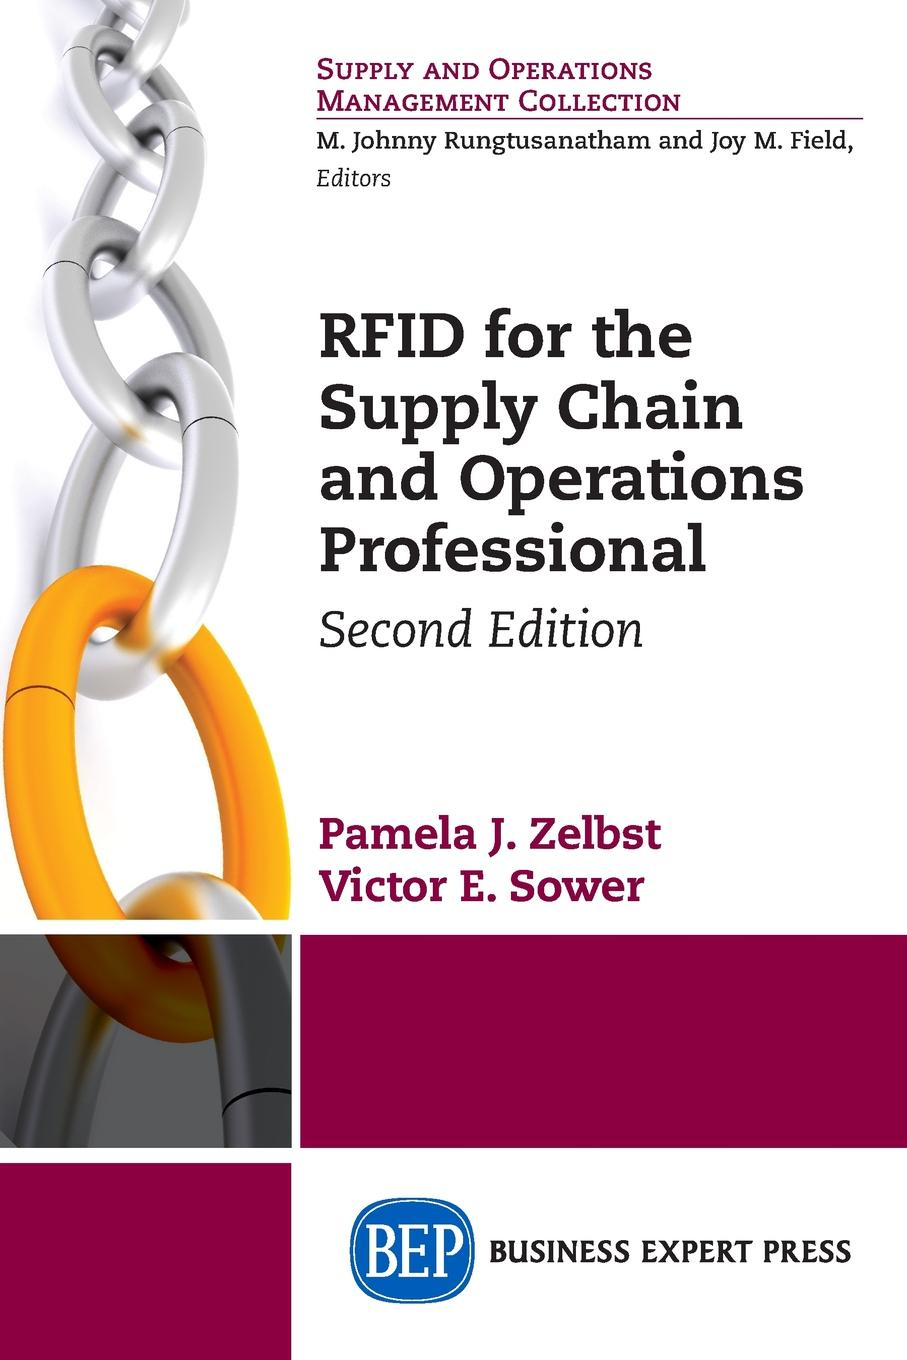 Pamela Zelbst, Victor Sower RFID for the Supply Chain and Operations Professional, Second Edition security rfid proximity entry door lock access control system 10 keys